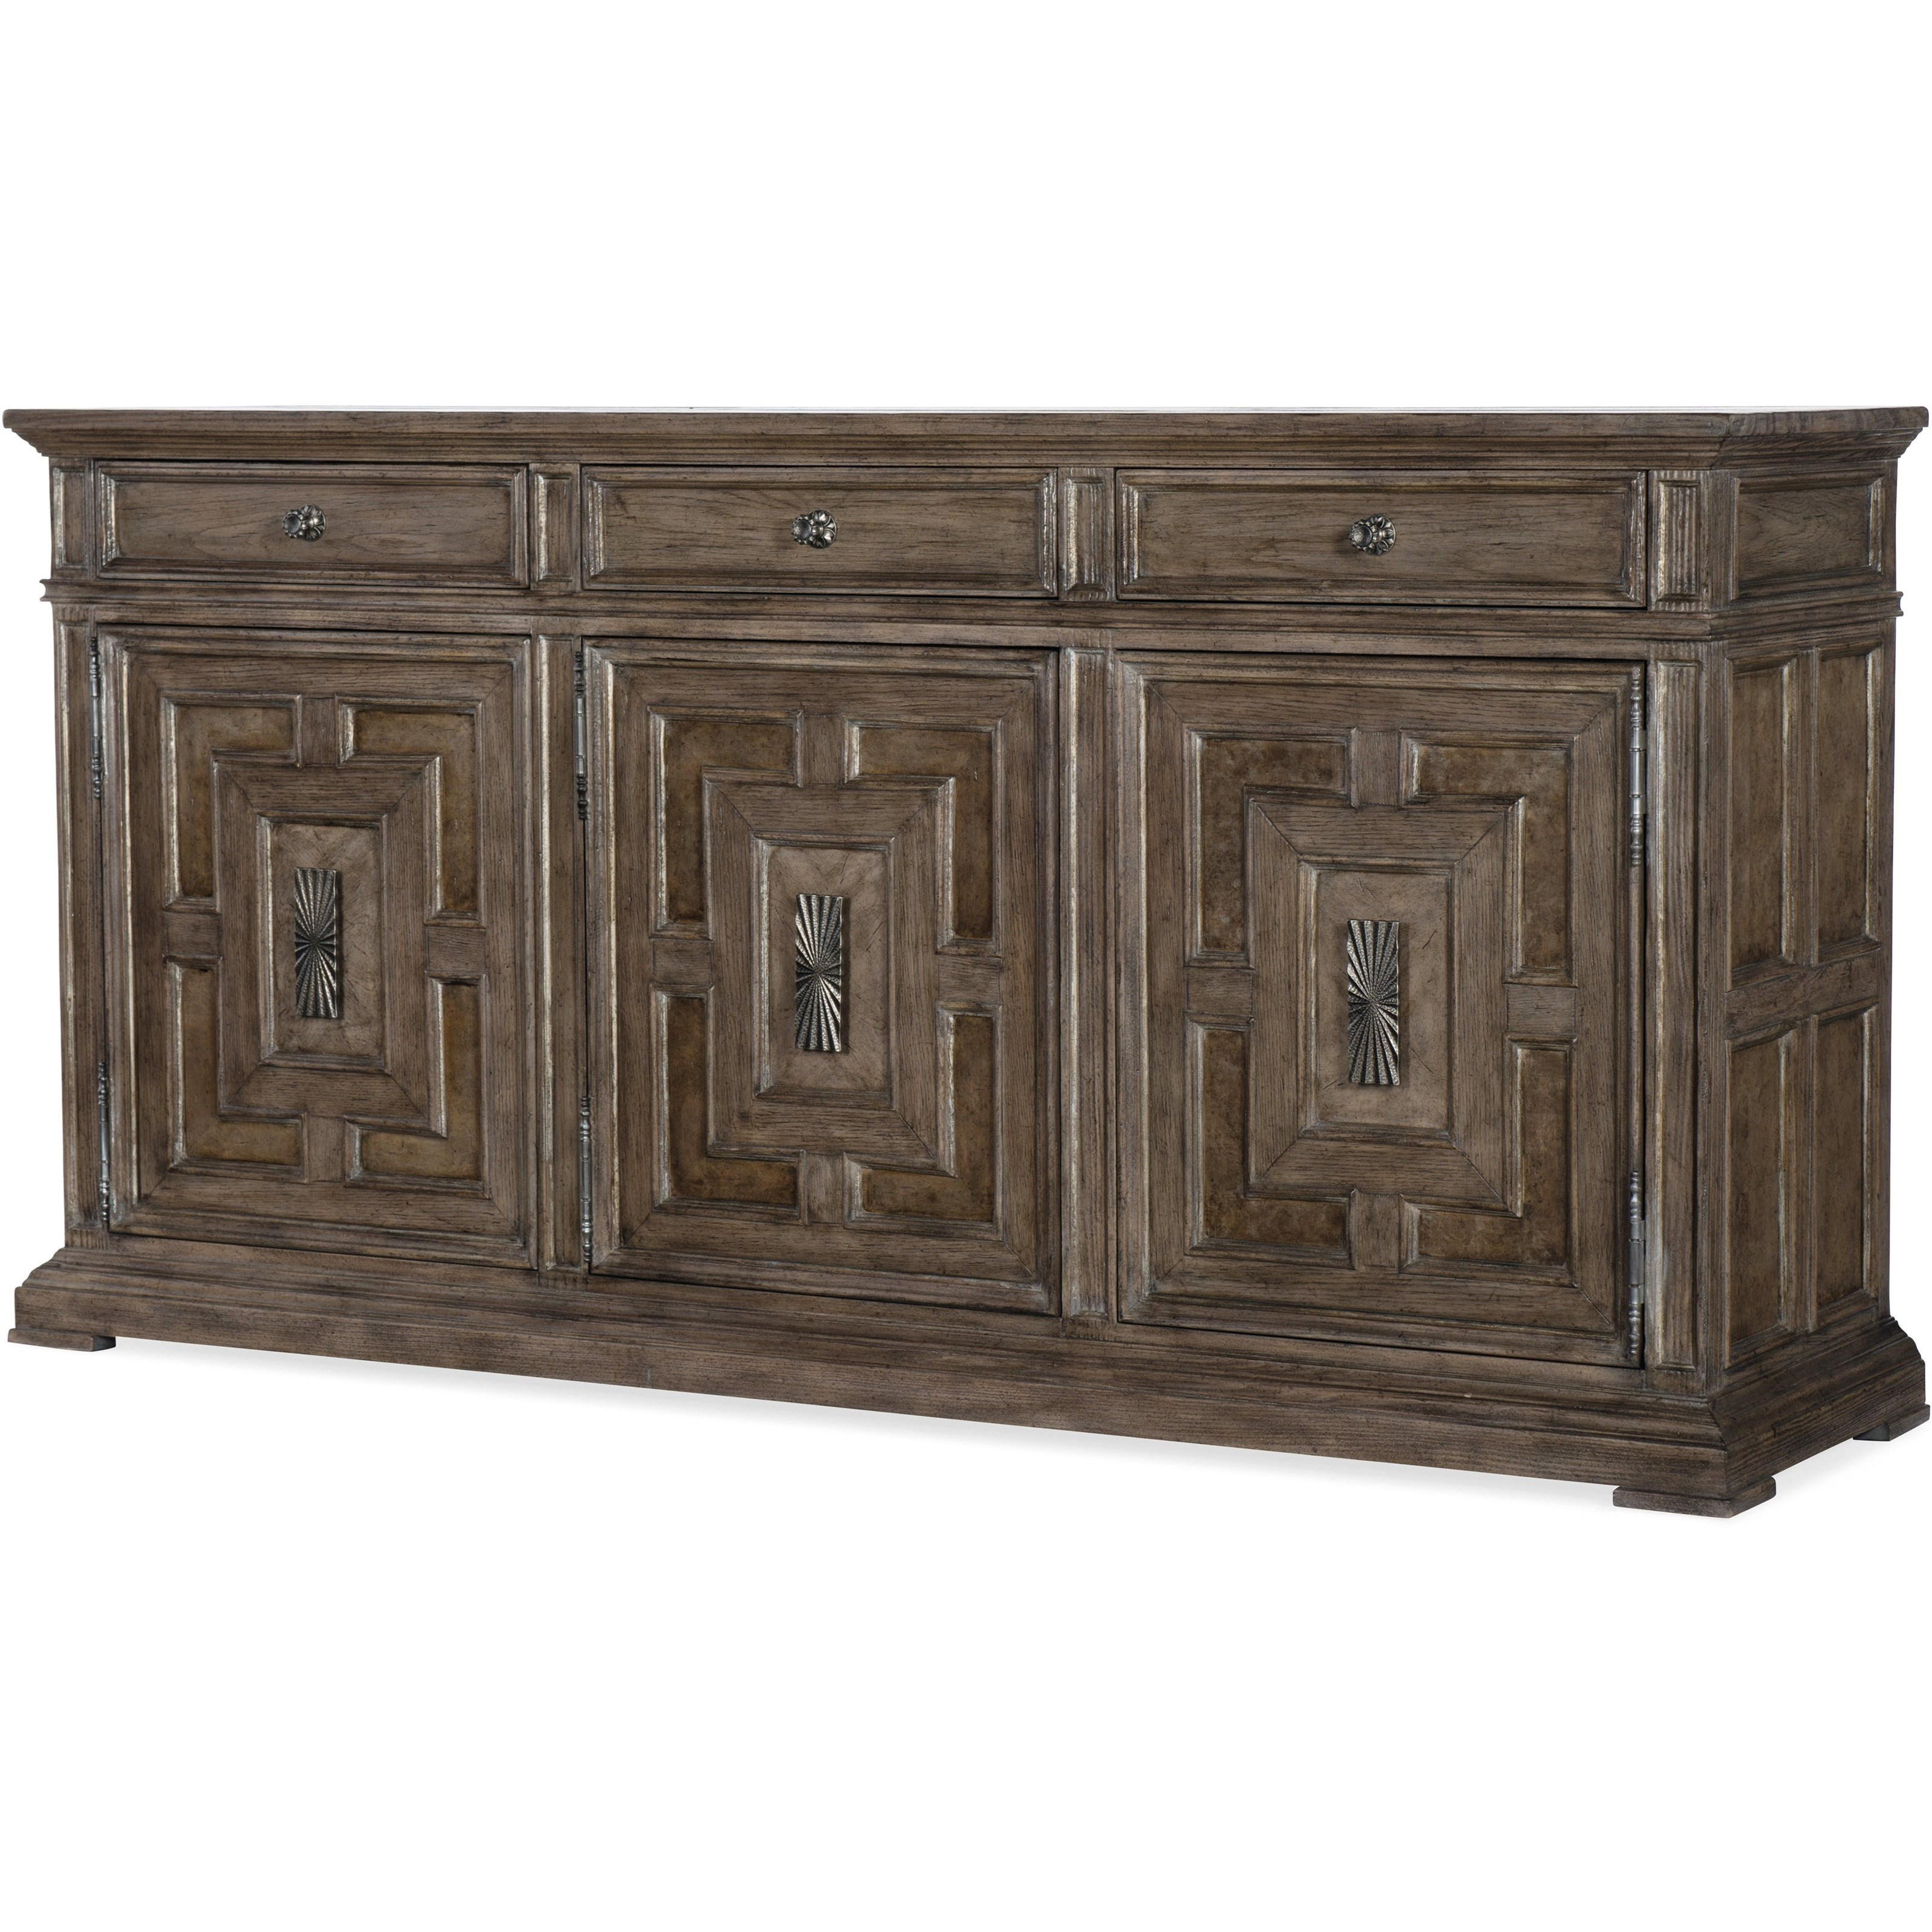 Woodlands Traditional 3 Door And 3 Drawer Buffethooker Furniture At Dunk & Bright Furniture Within 3 Drawer Storage Buffets (View 17 of 20)